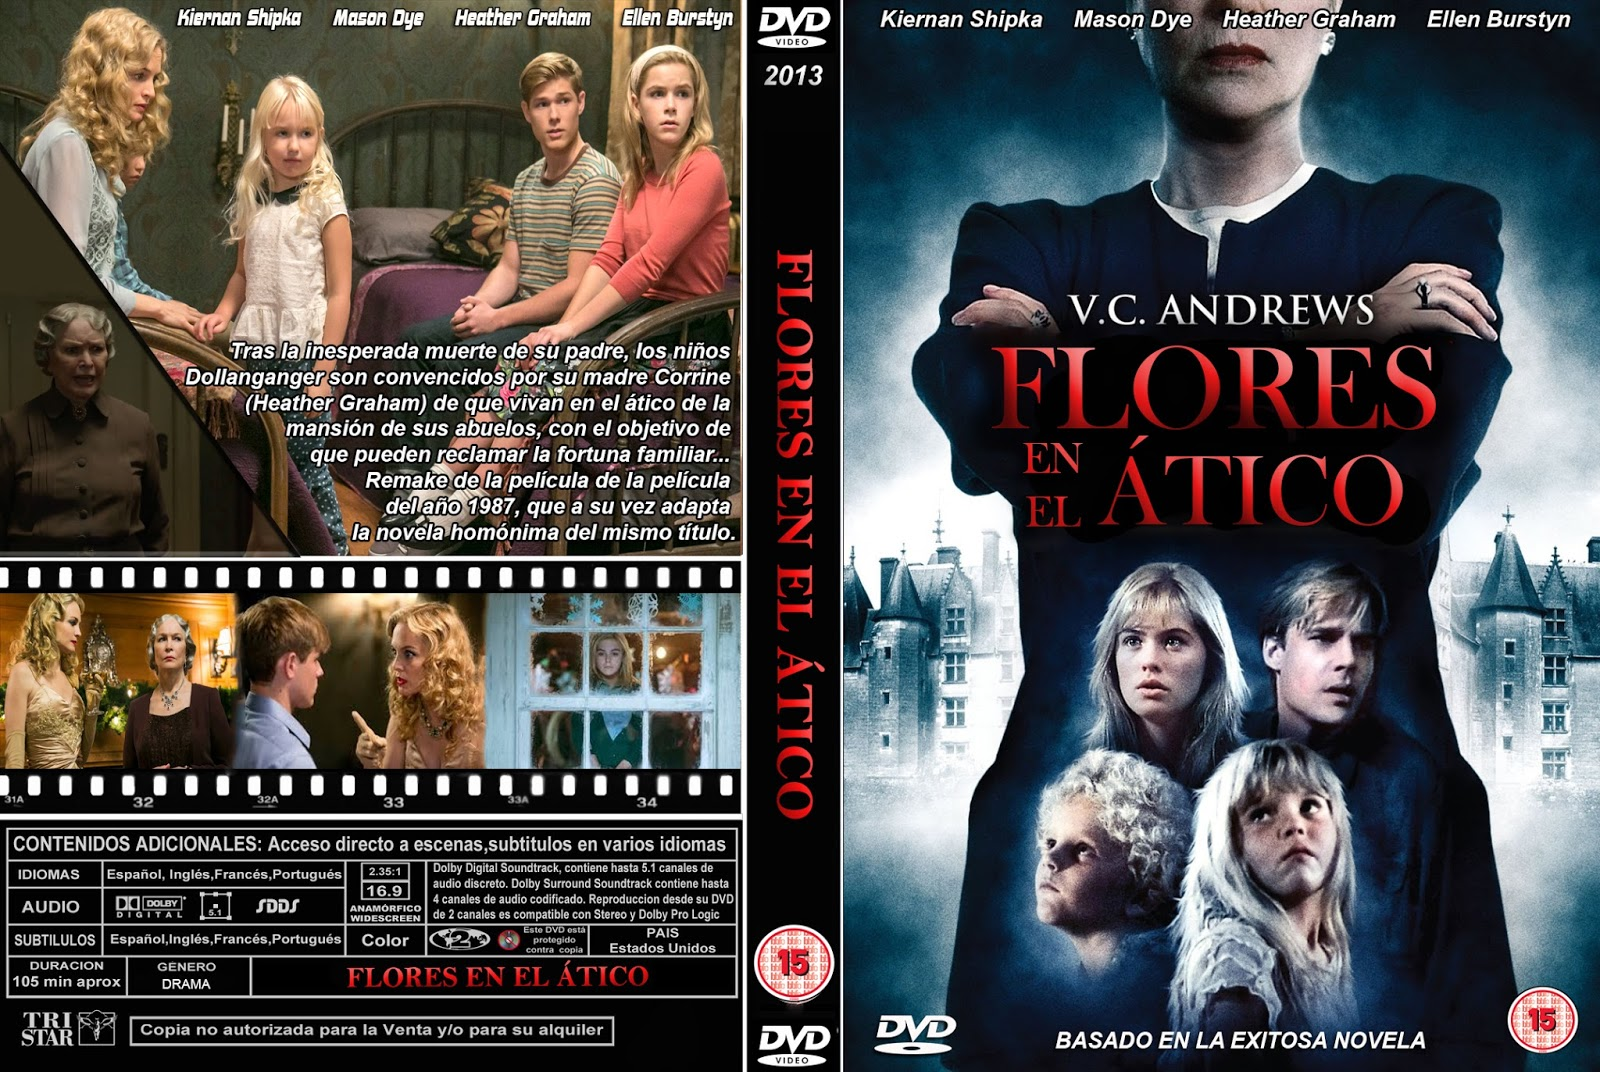 PB | DVD Cover / Caratula FREE: FLOWERS IN THE ATTIC - DVD ...